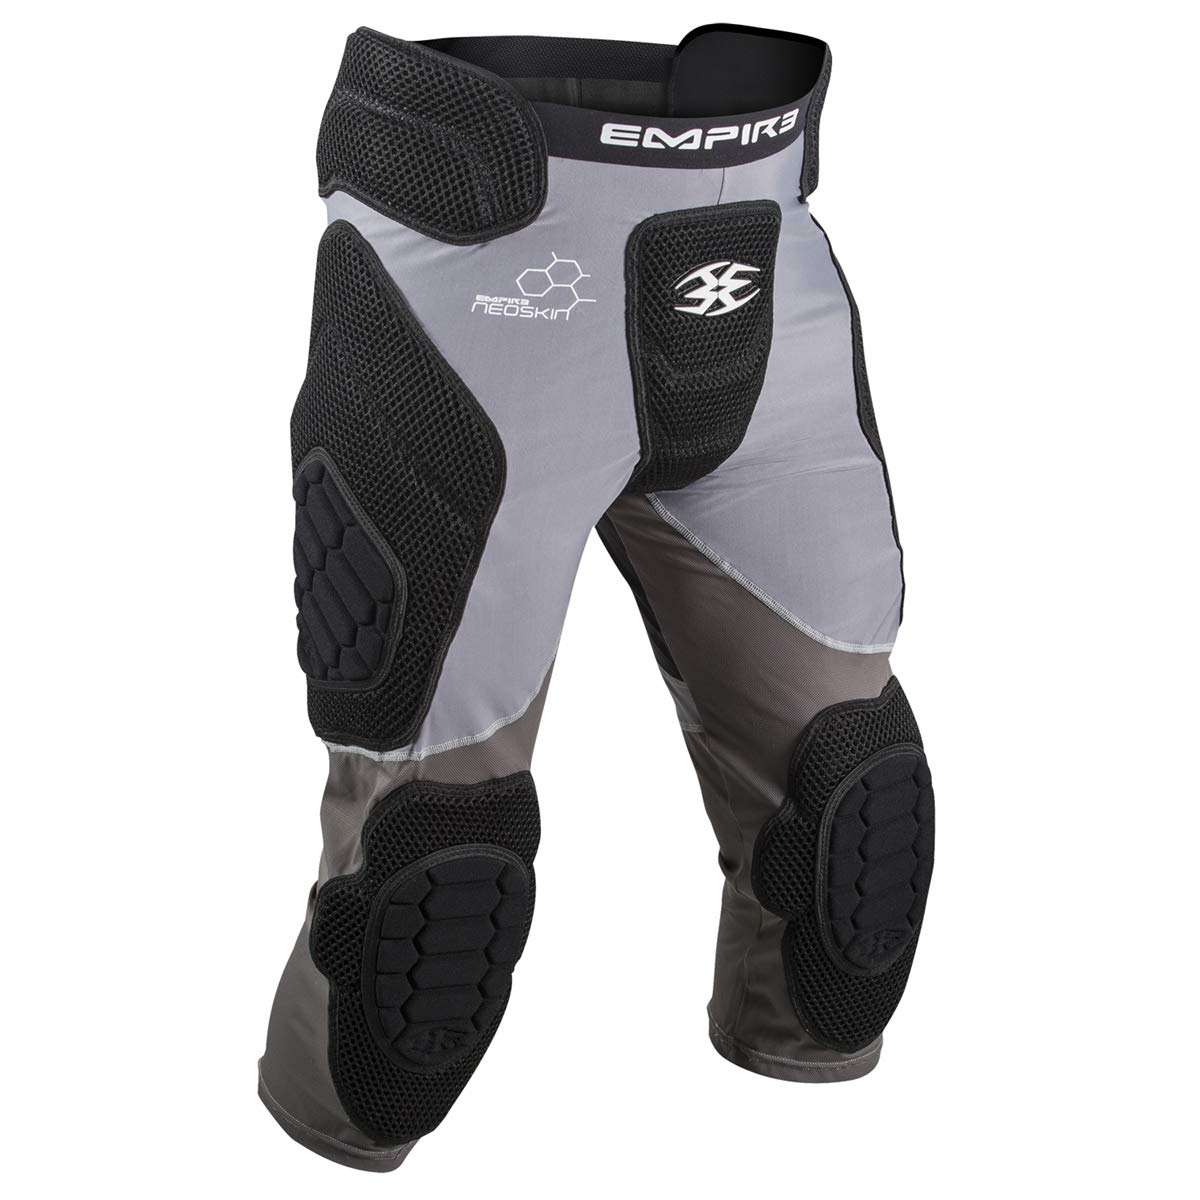 Empire Paintball Neoskin Slide Short W/Knee Pads - Black/Grey (Youth) by Empire